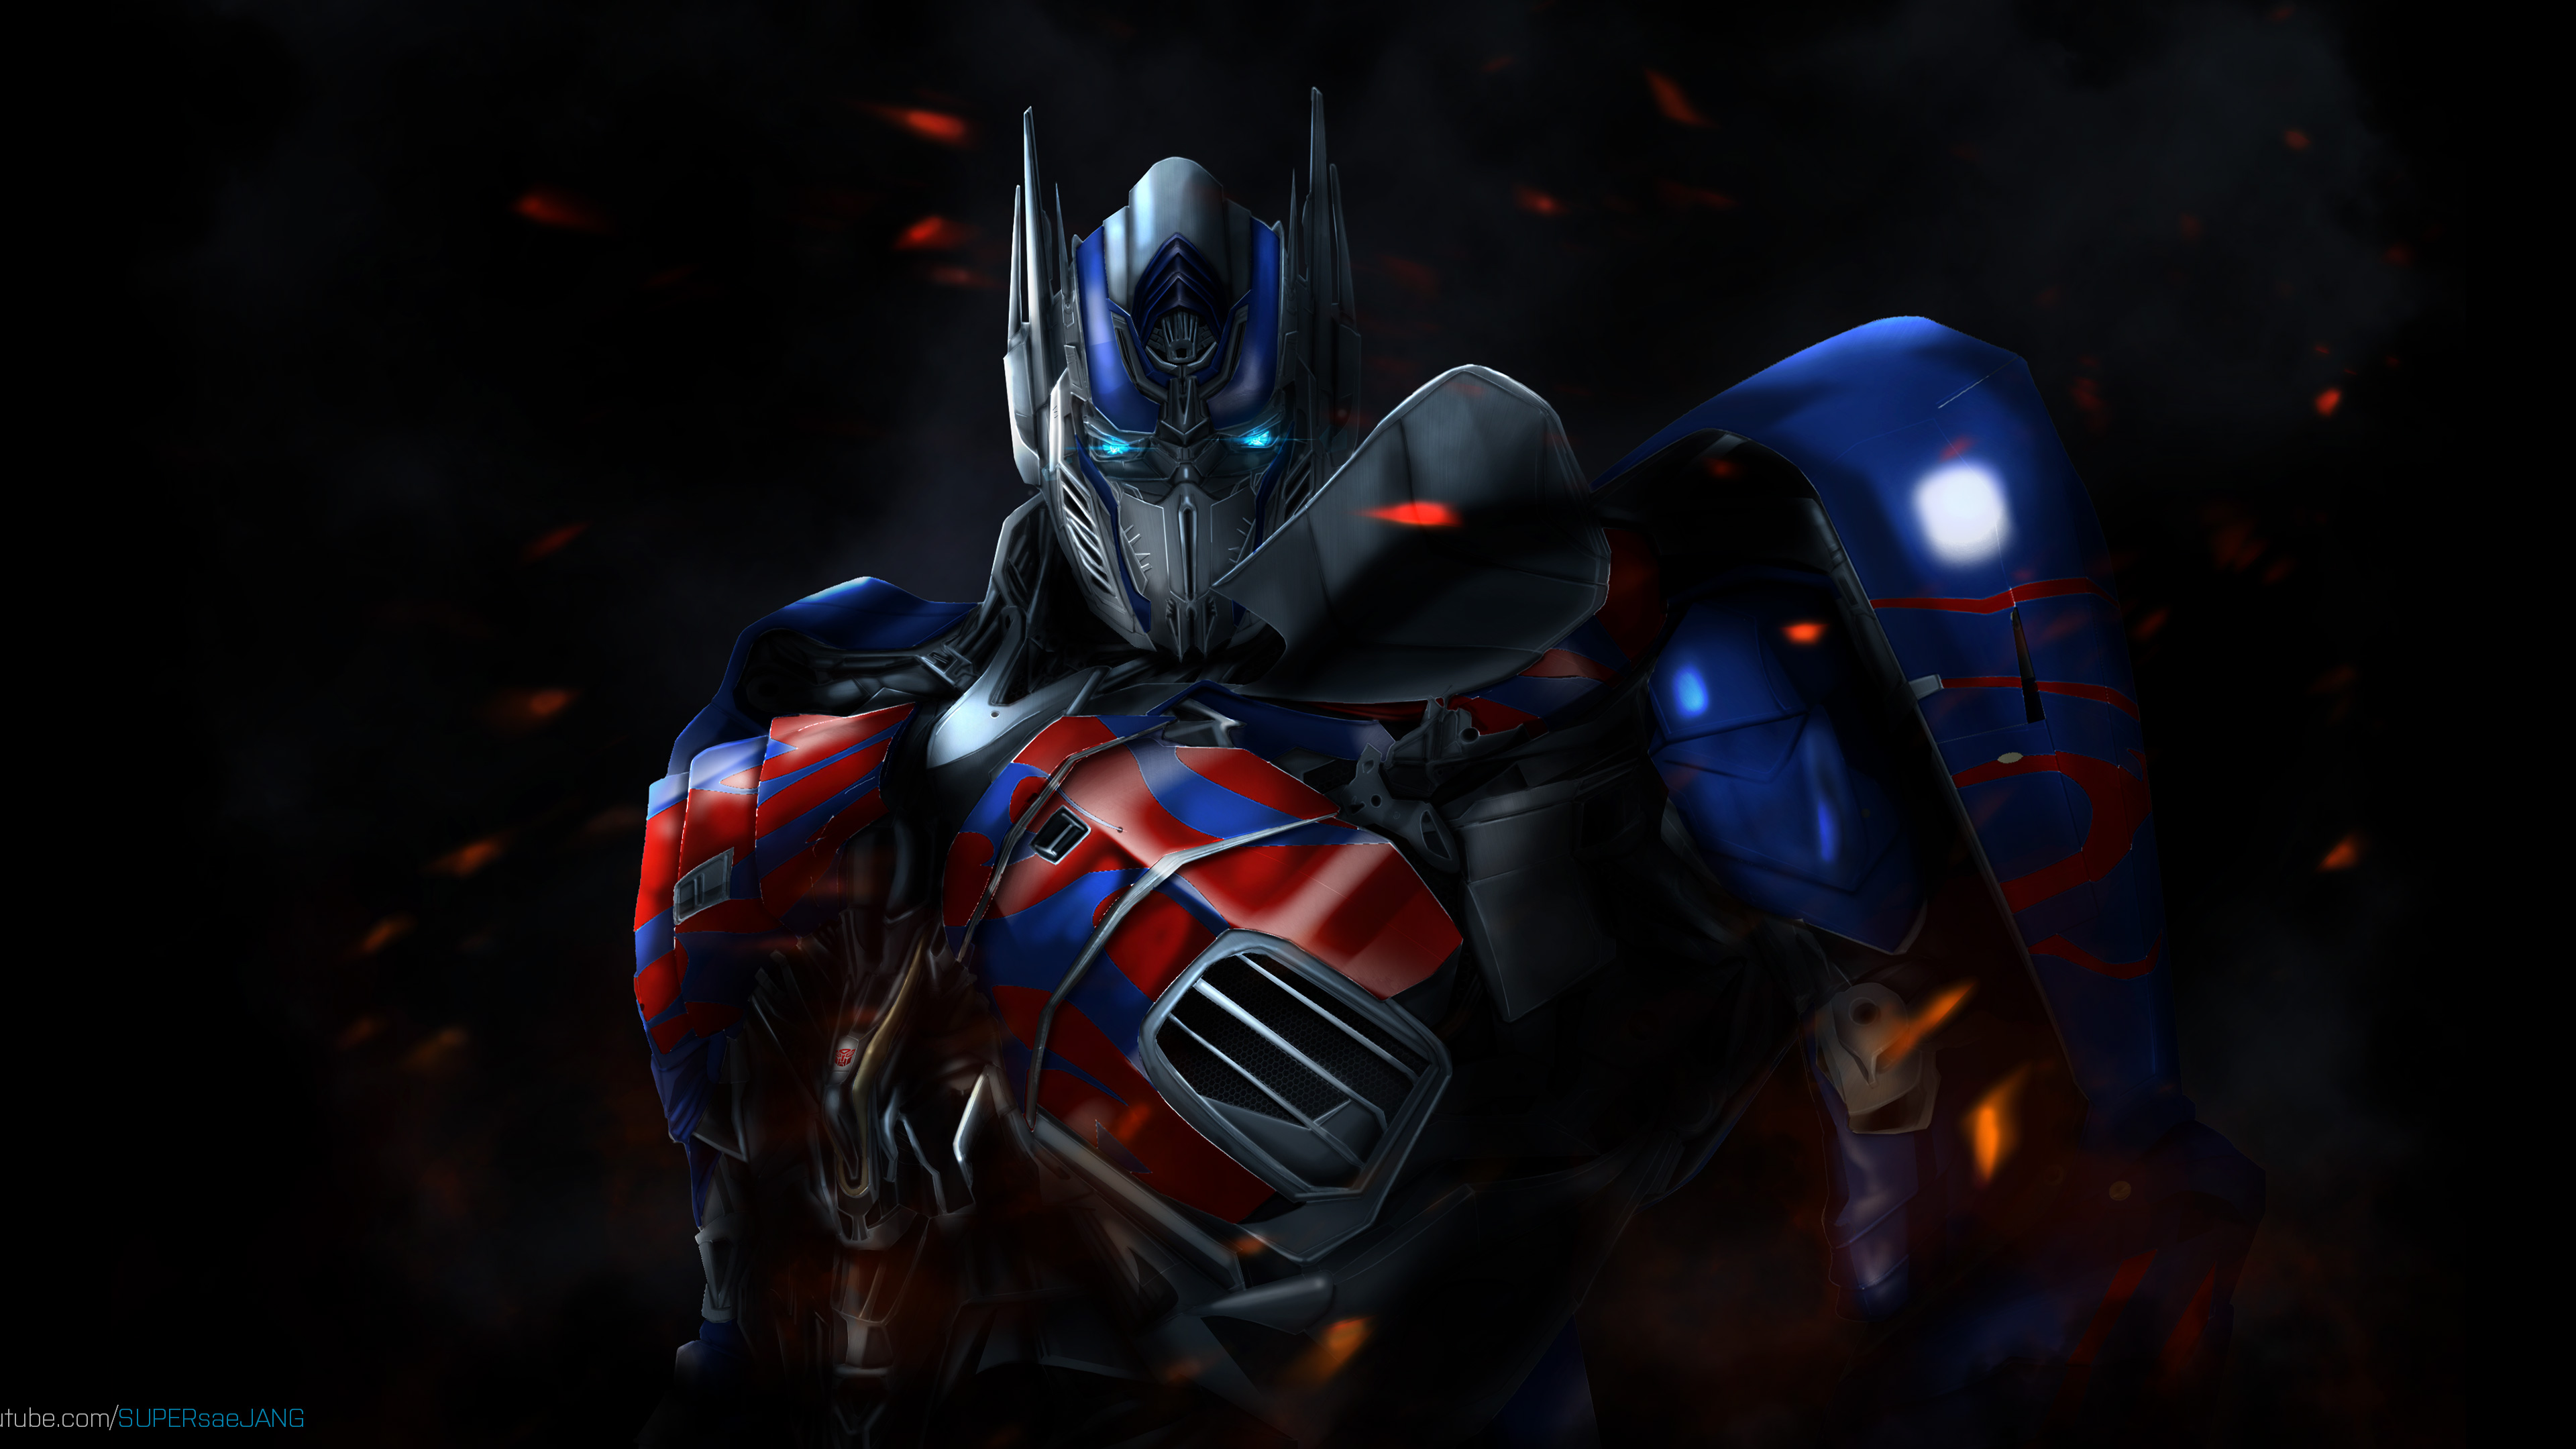 Optimus 4k Wallpapers For Your Desktop Or Mobile Screen Free And